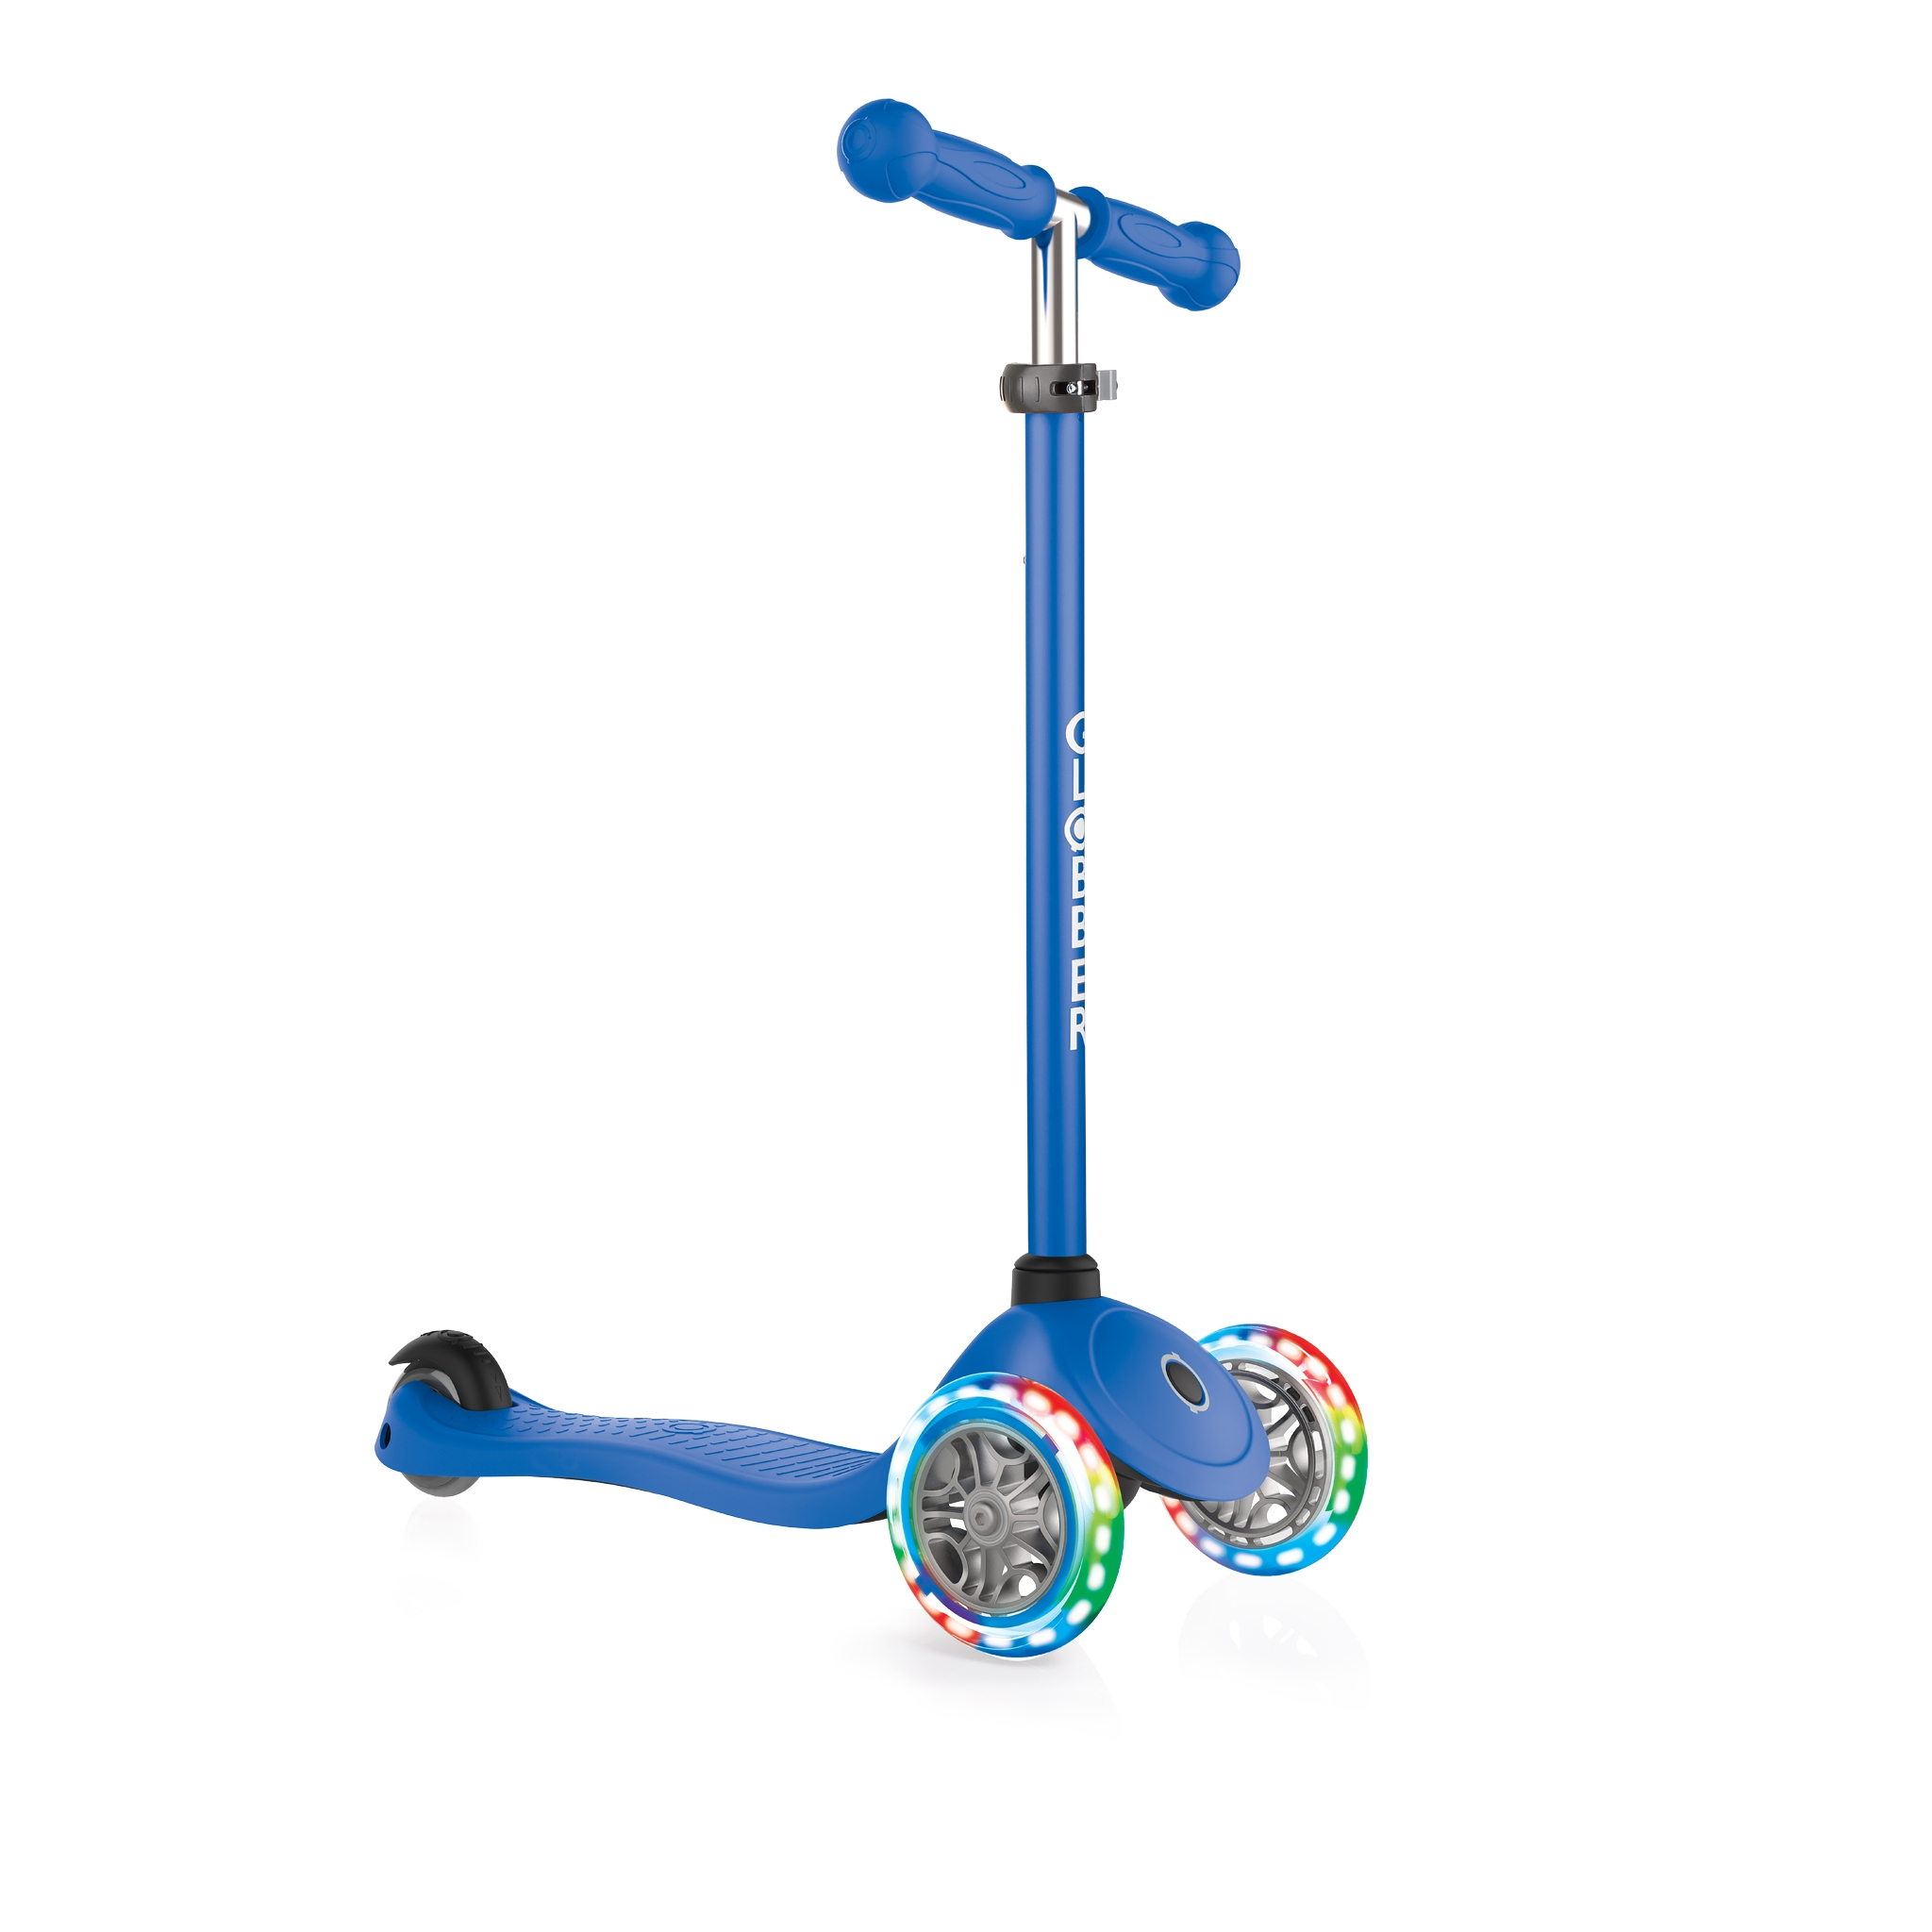 PRIMO-LIGHTS-3-wheel-scooter-for-kids-aged-3-and-above_navy-blue 0